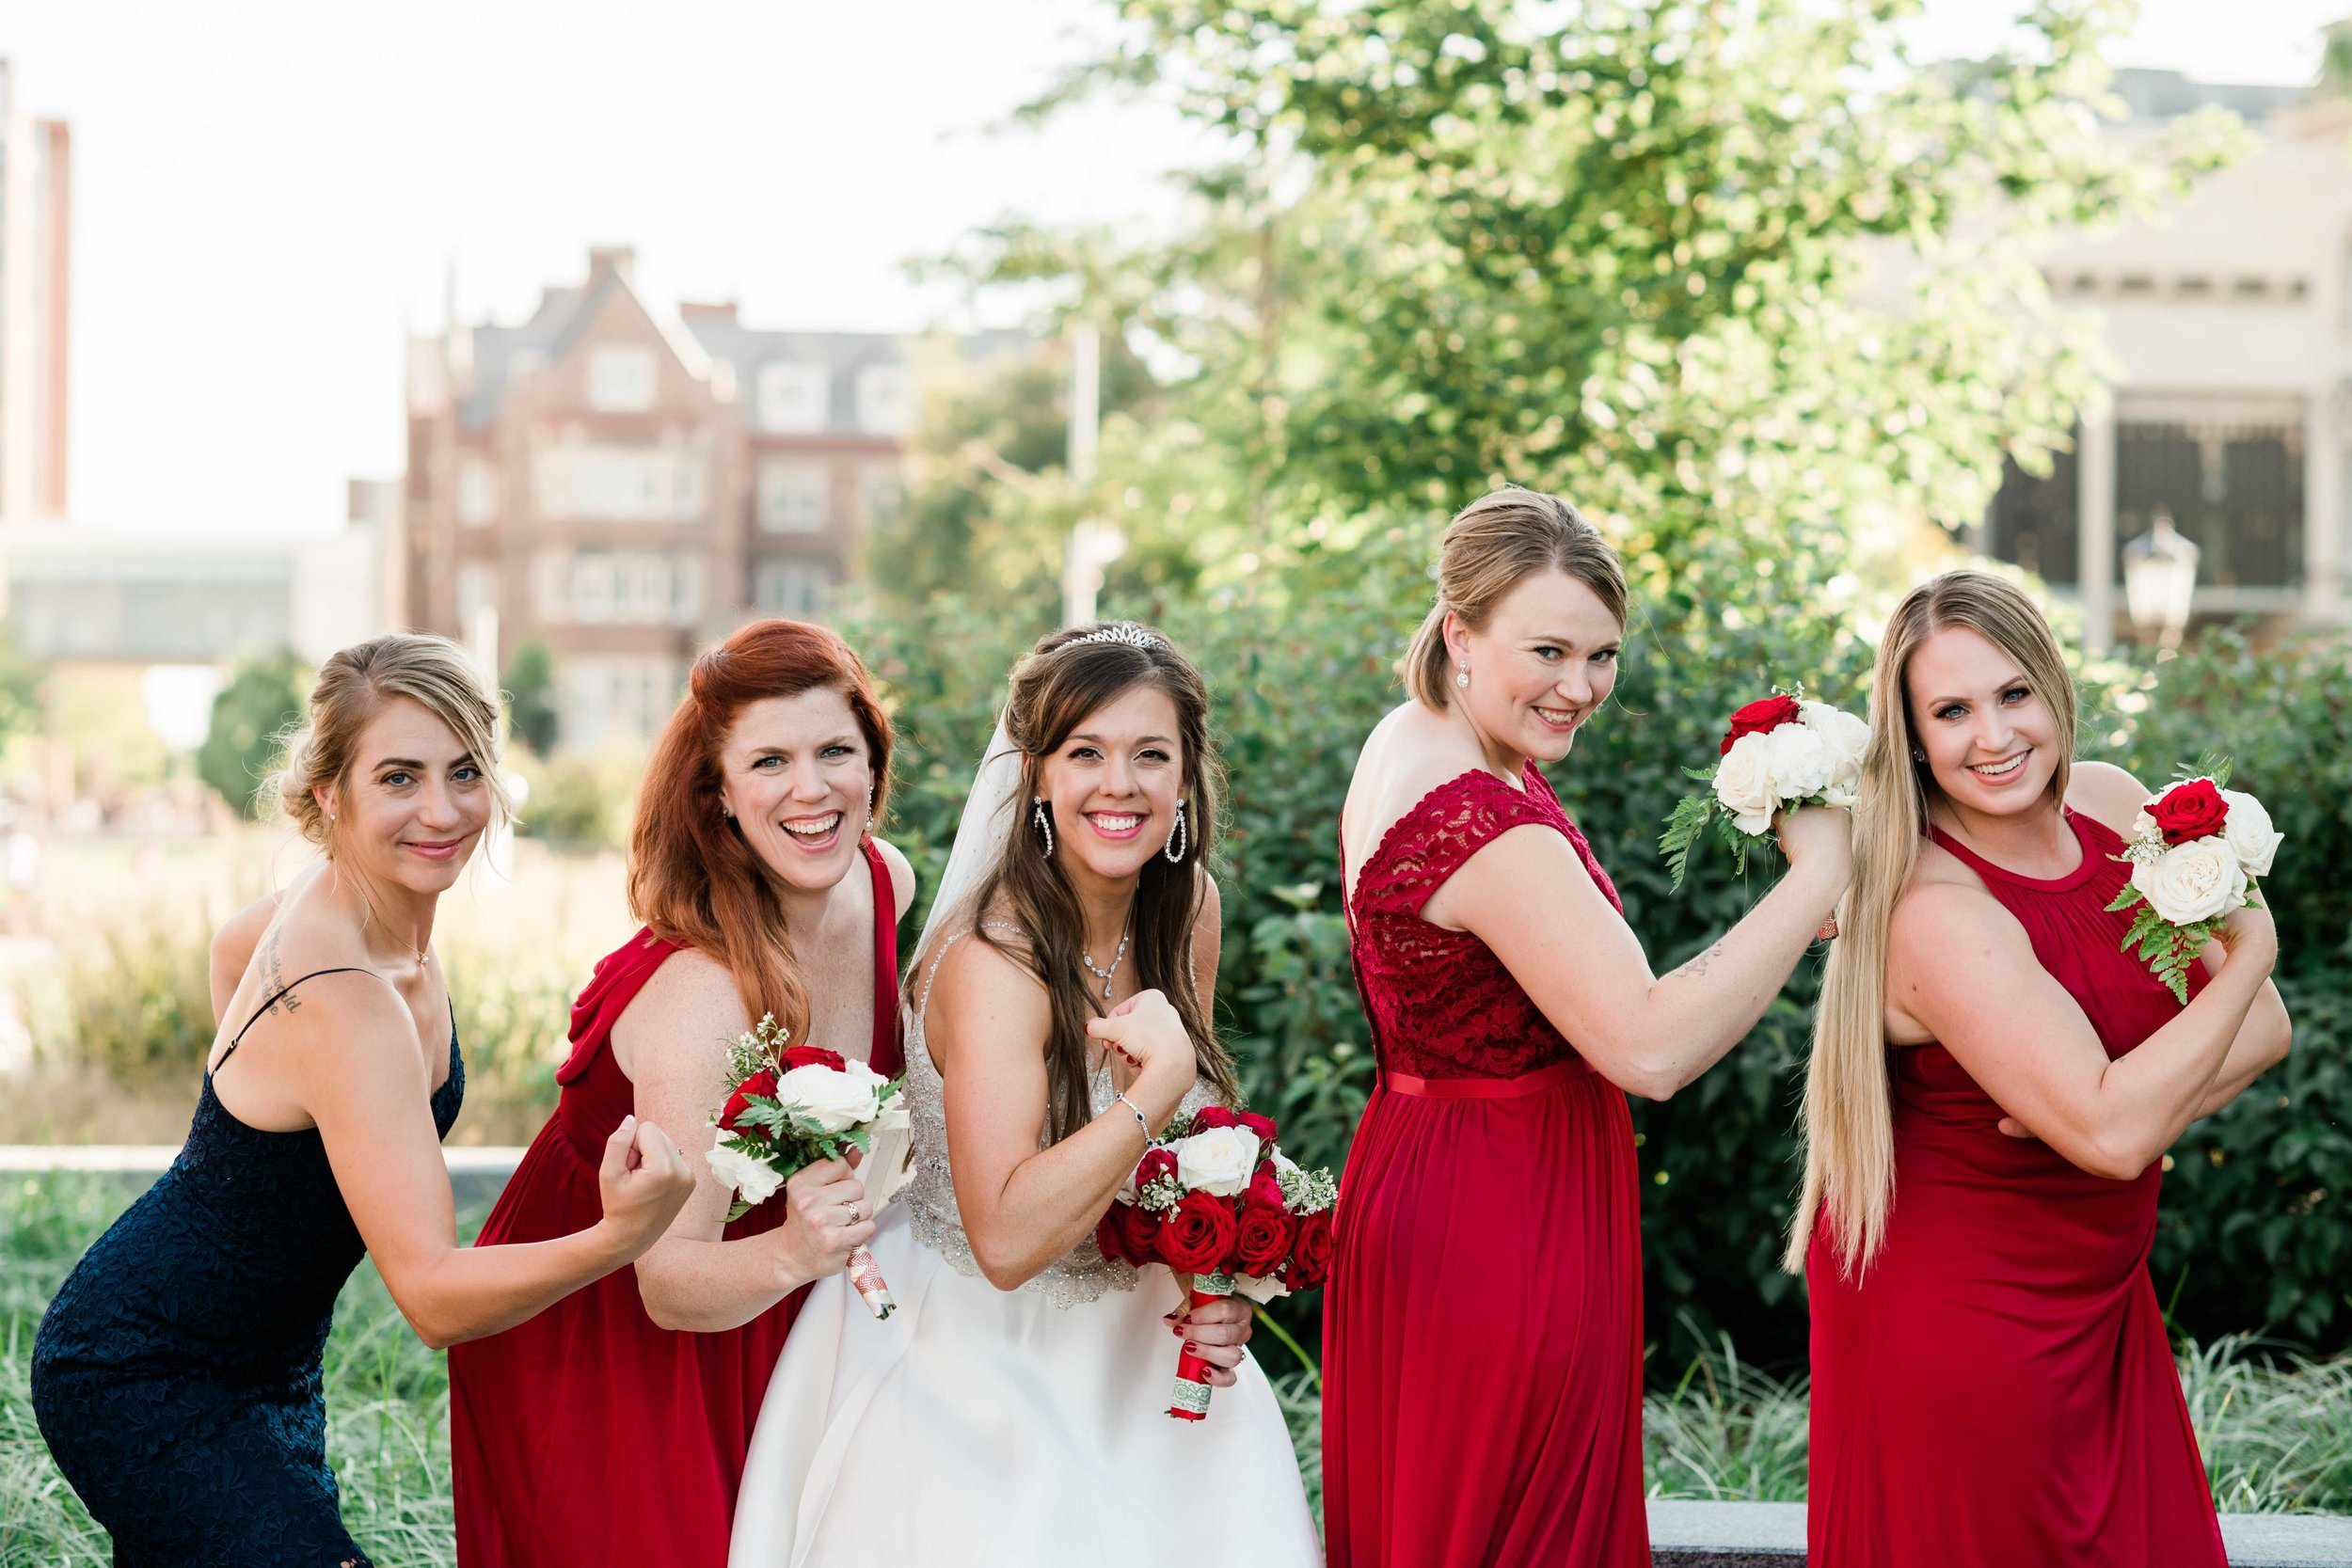 Bride and bridesmaids show off their biceps